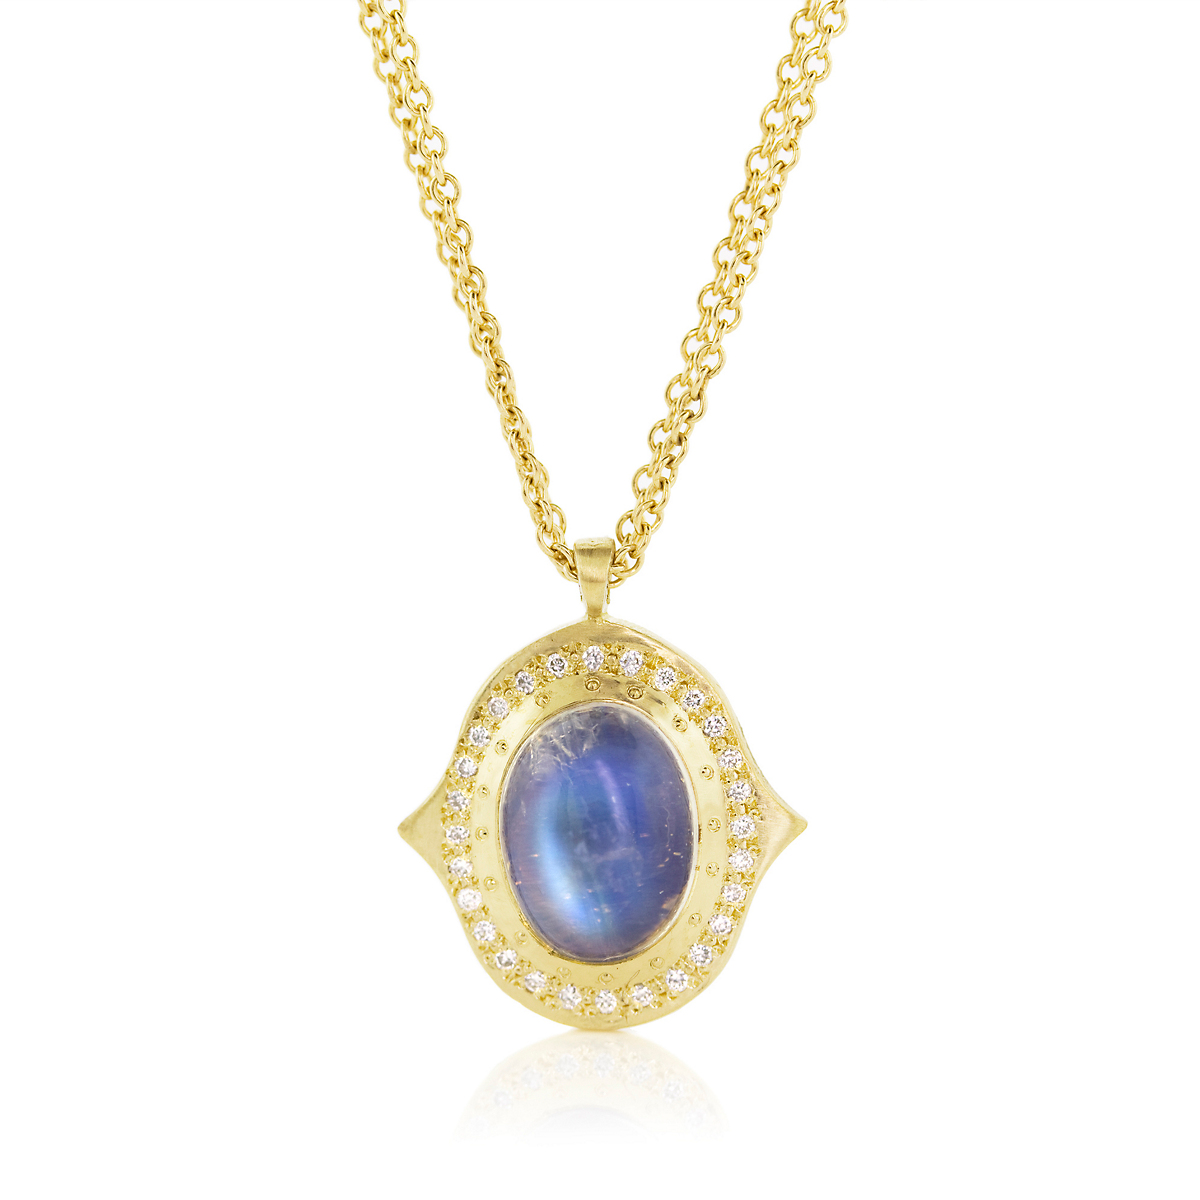 Adel Chefridi Grace Moonstone and Diamond Pendant Necklace